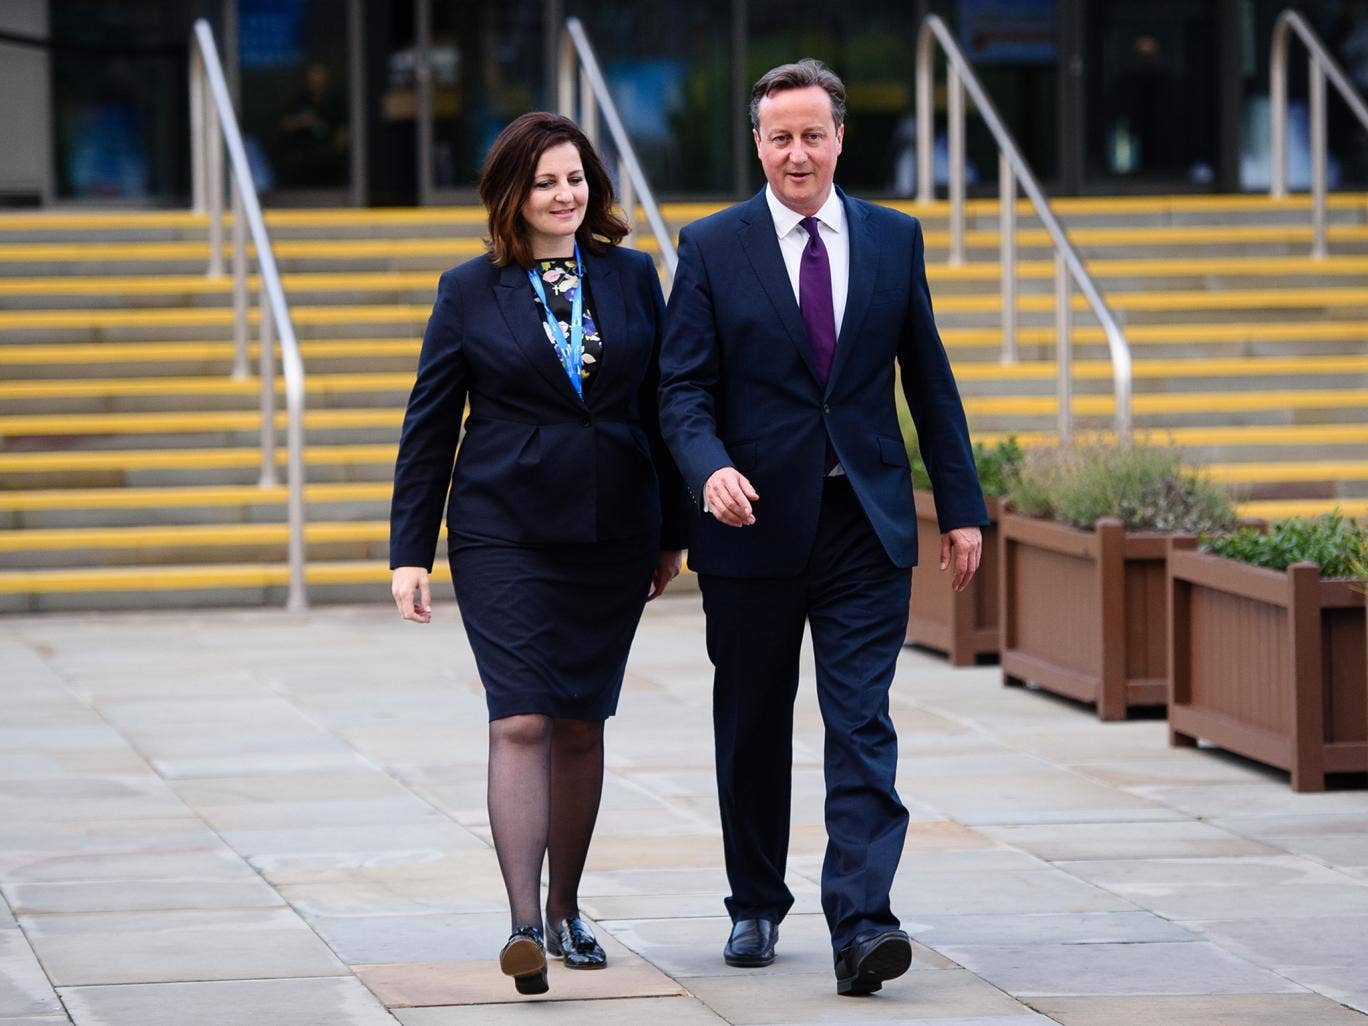 Tory Party Conference: Female MPs complain of being used as 'arm candy' in photos with David CameronBrexit in Brief newsletterBrexit in Brief newsletter        Shape    Created with Sketch.                                                                                                        MPs complain of being used as 'arm candy' in photos with Cameron